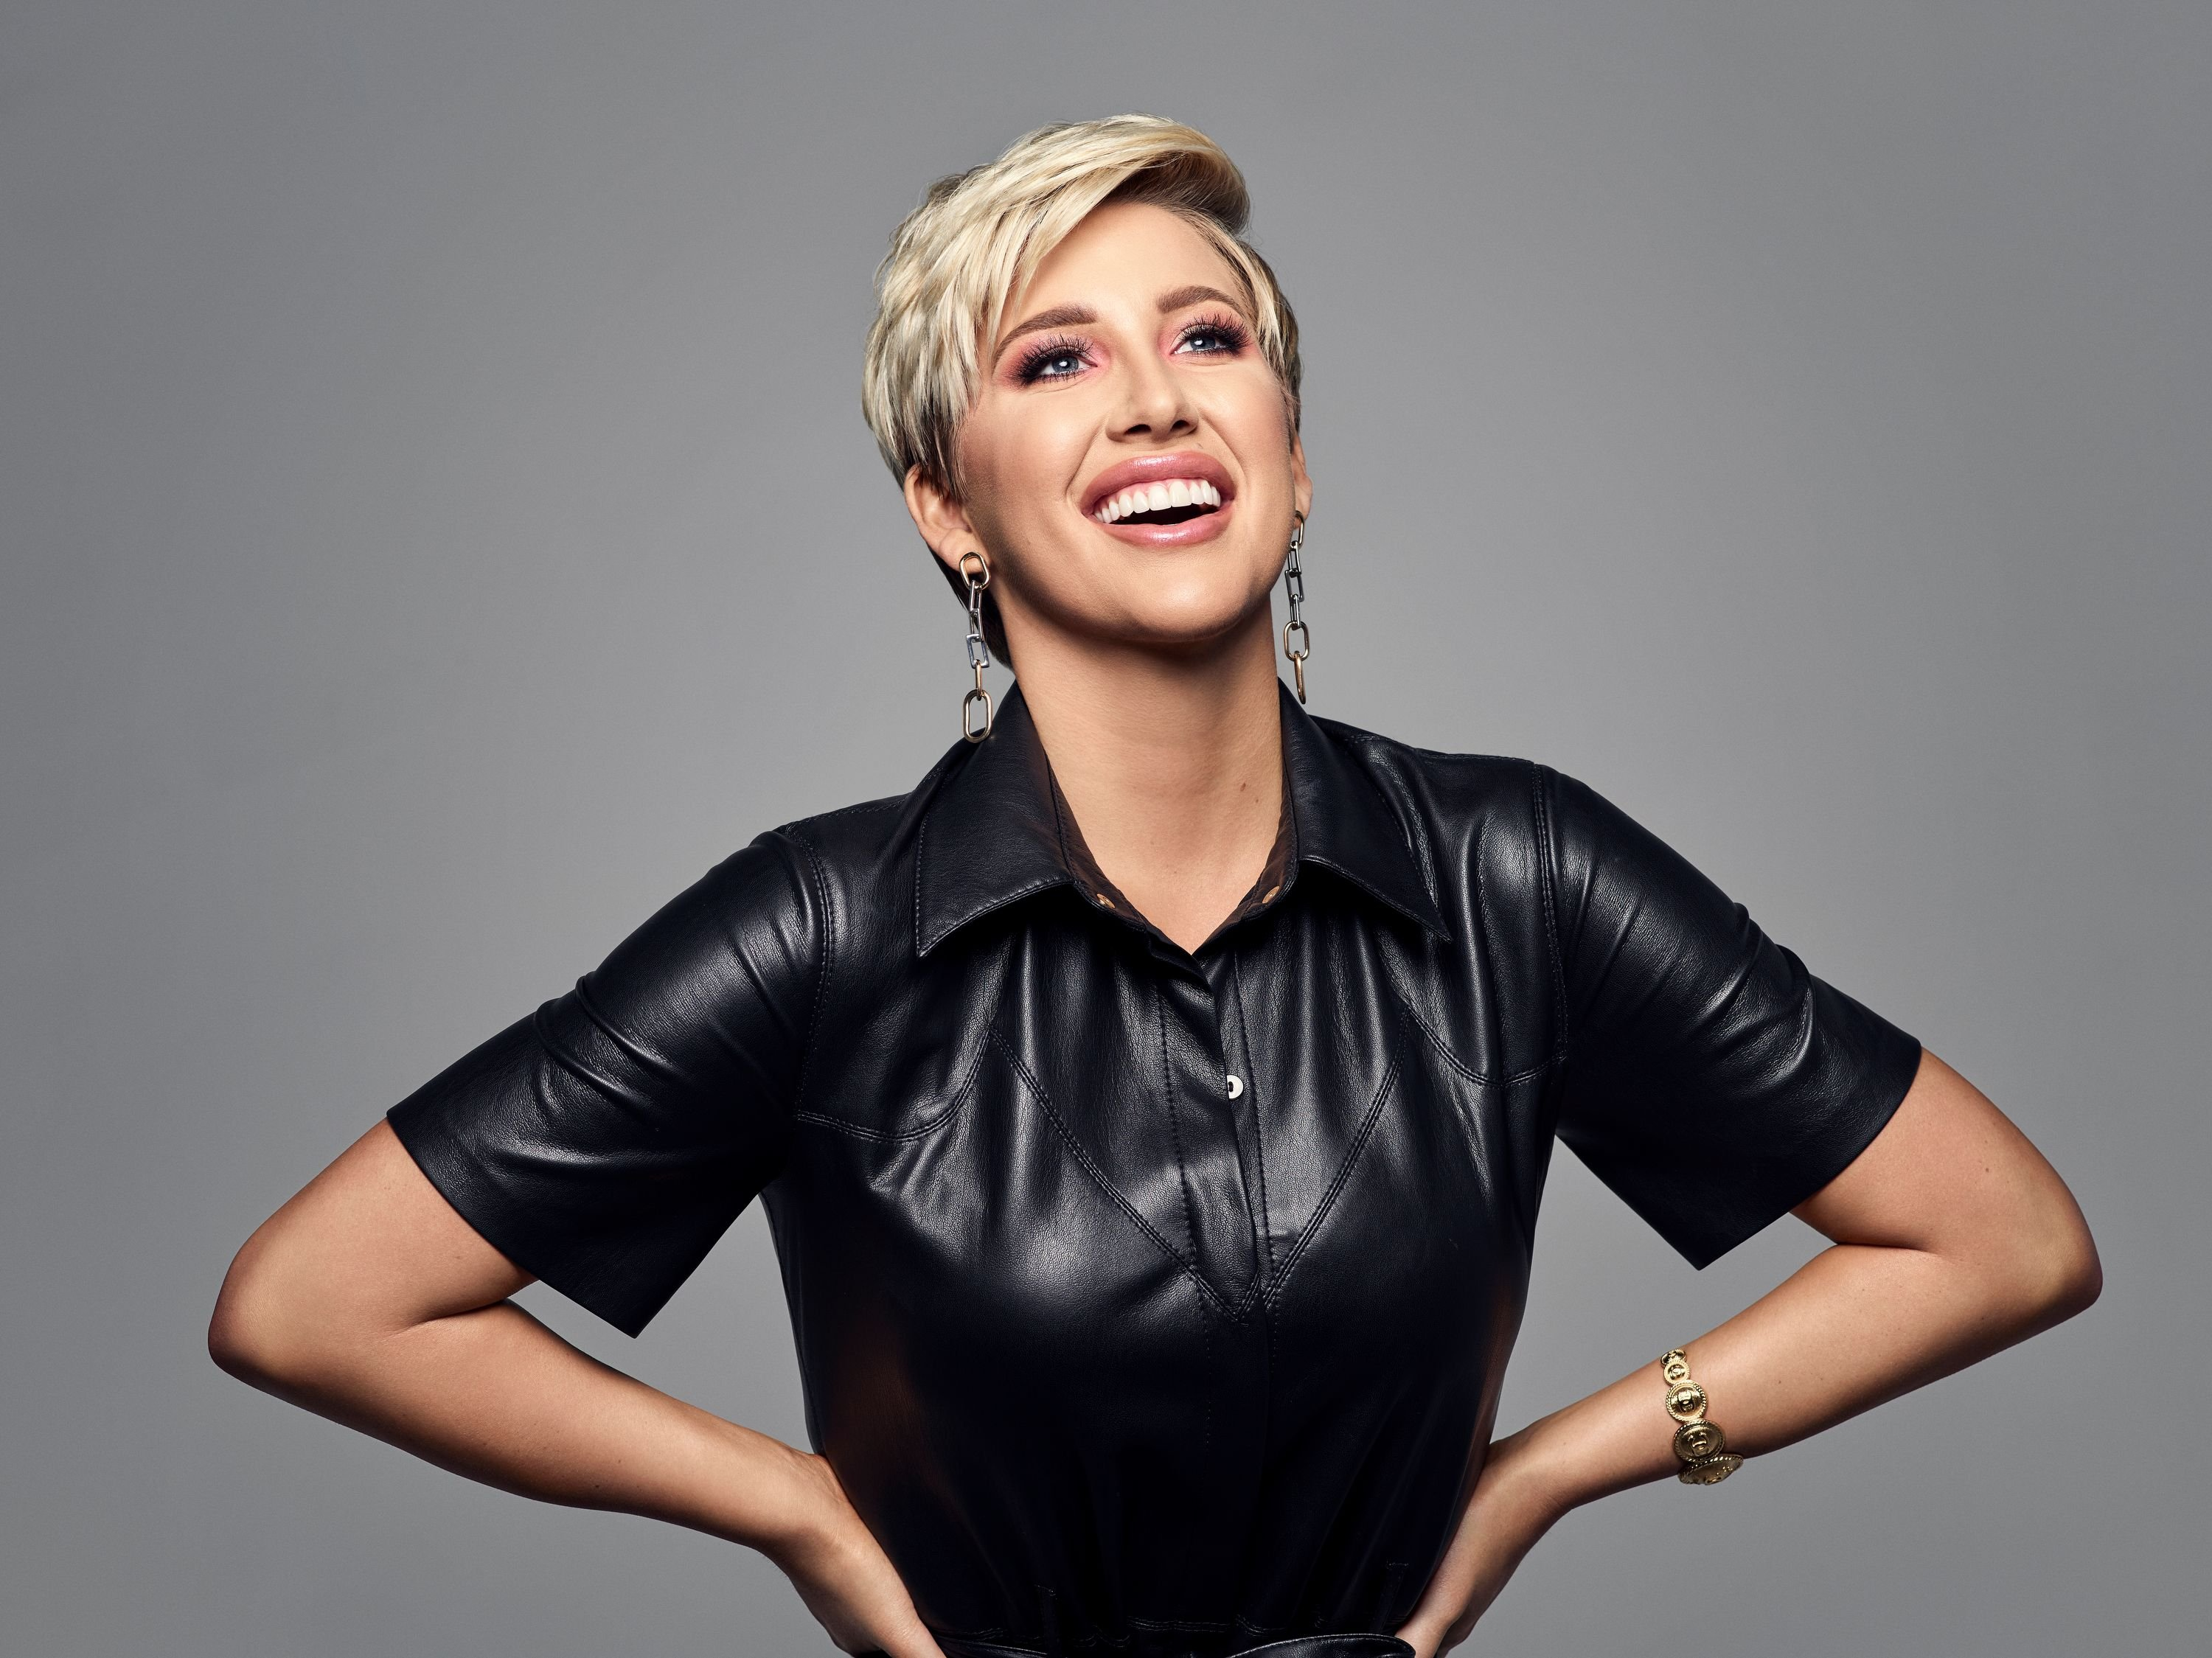 Savannah Chrisley at Chrisley Knows Best - Season 8 on March 09, 2020   Photo: Getty Images